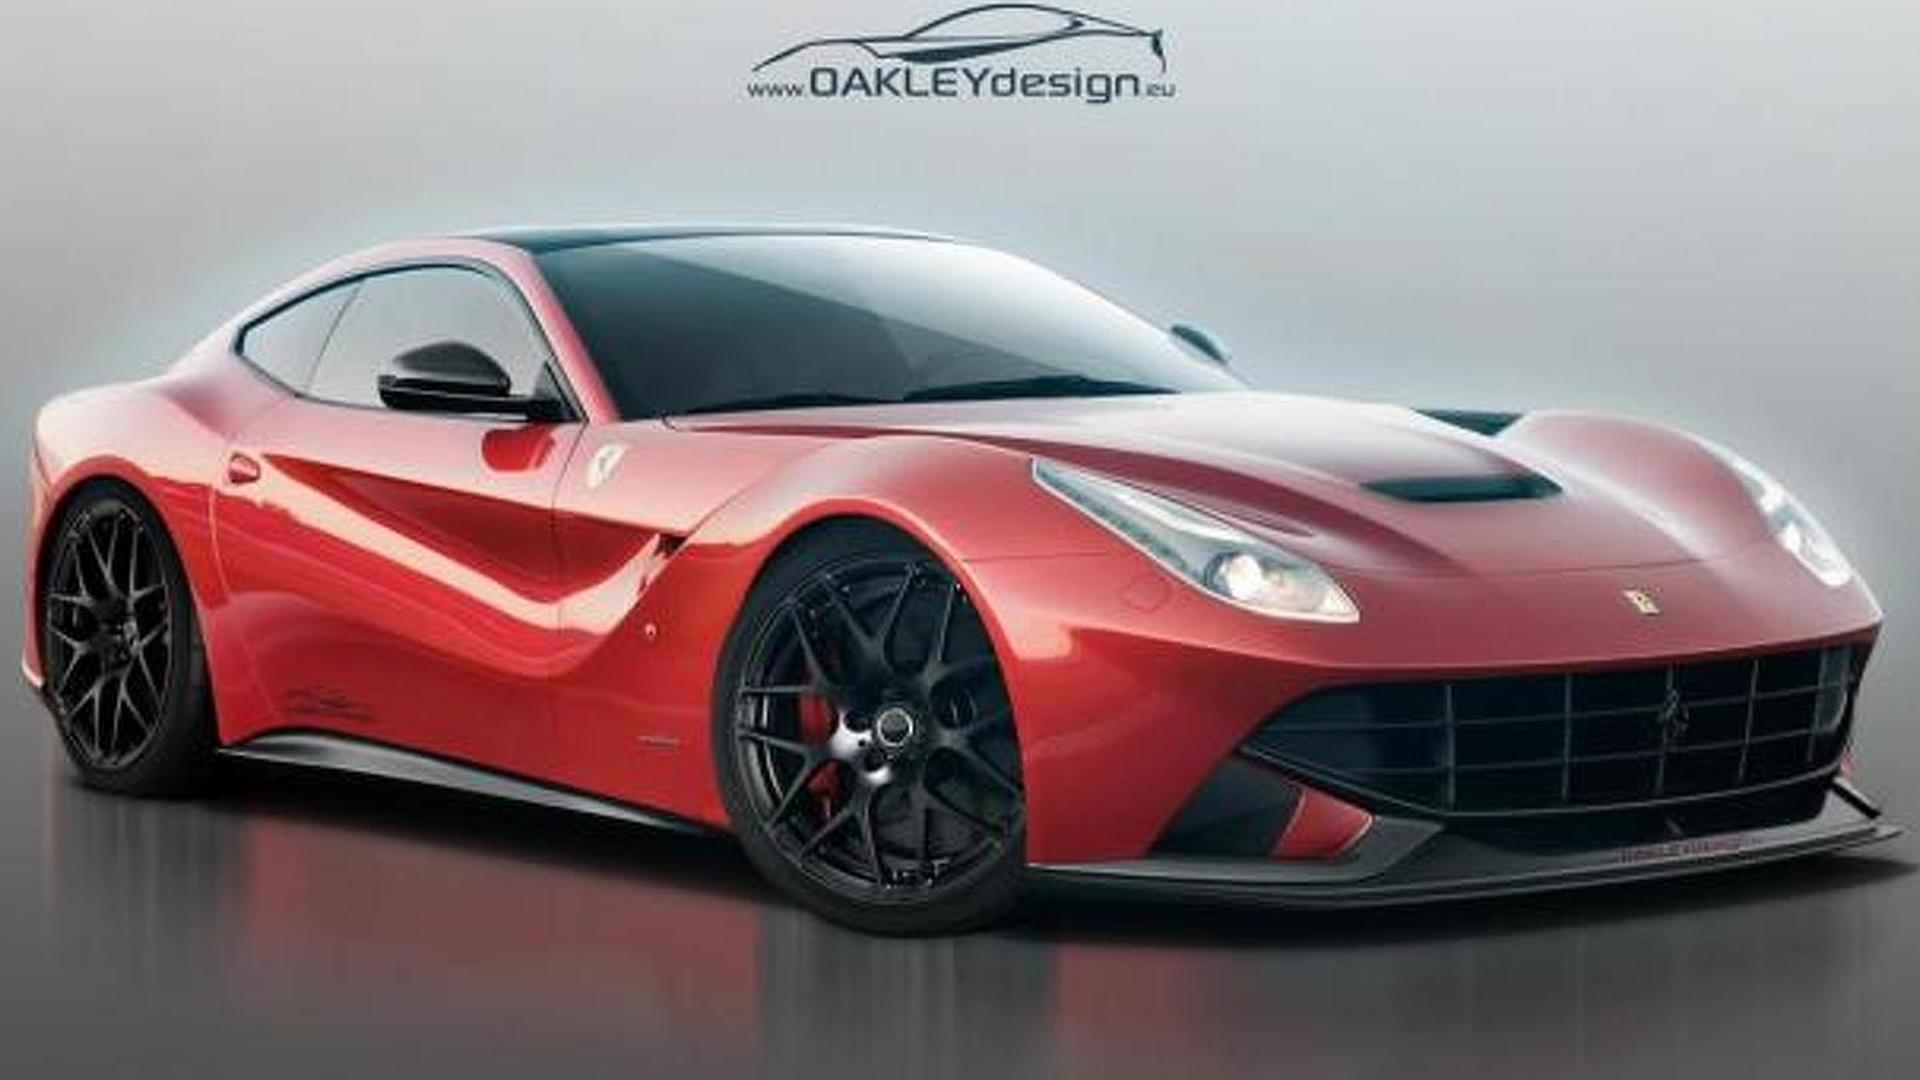 Ferrari F12 Berlinetta receives minor tweaks from Oakley Design